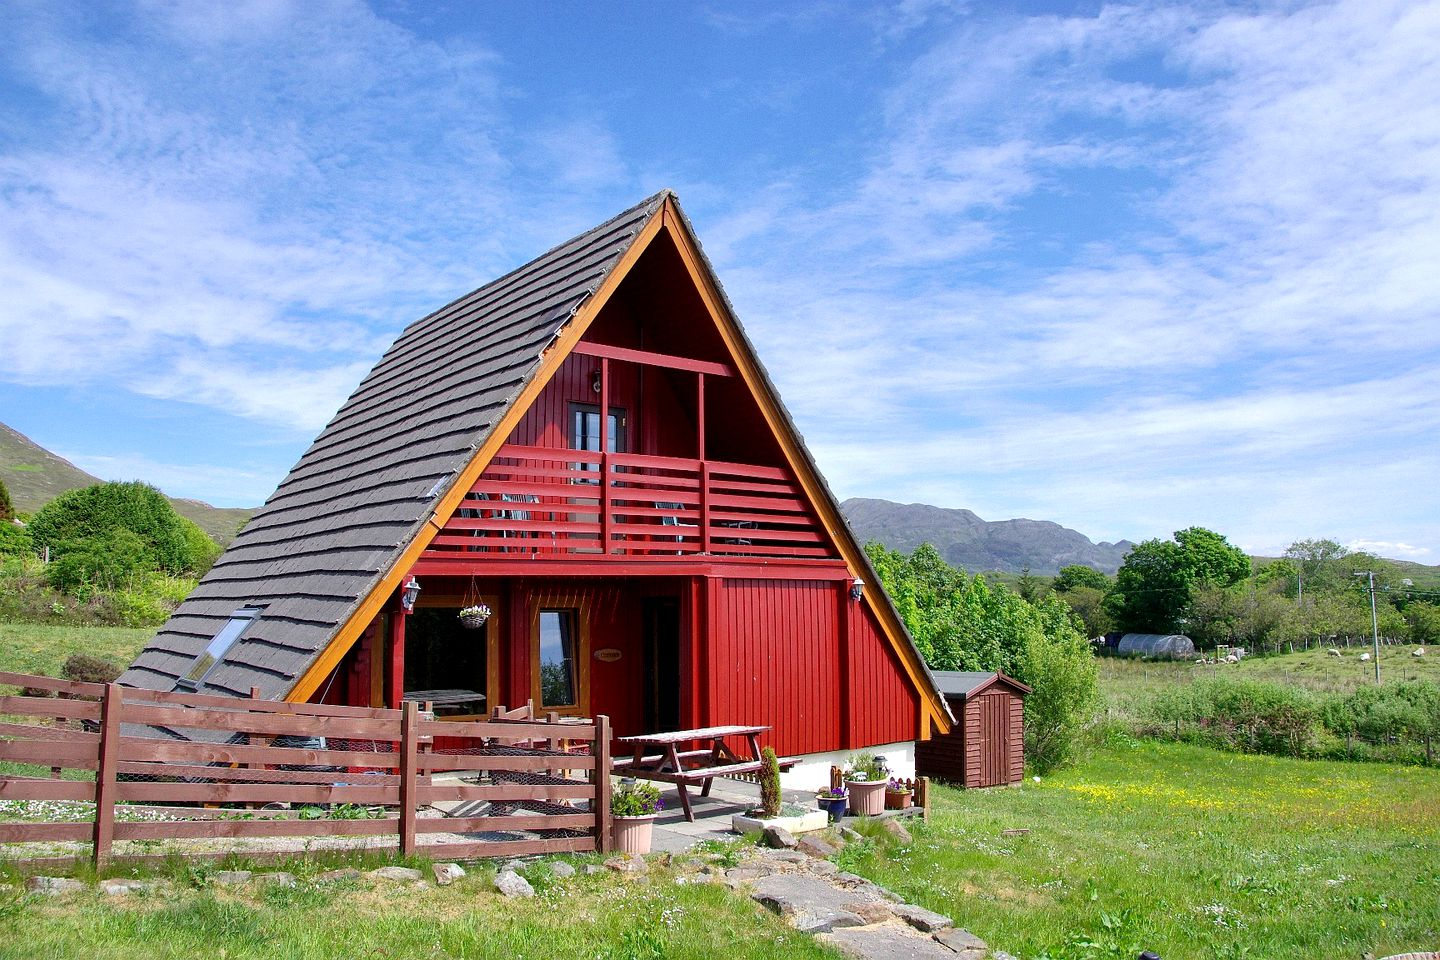 A-Frame Cabins (Kilchoan, Scotland, United Kingdom)